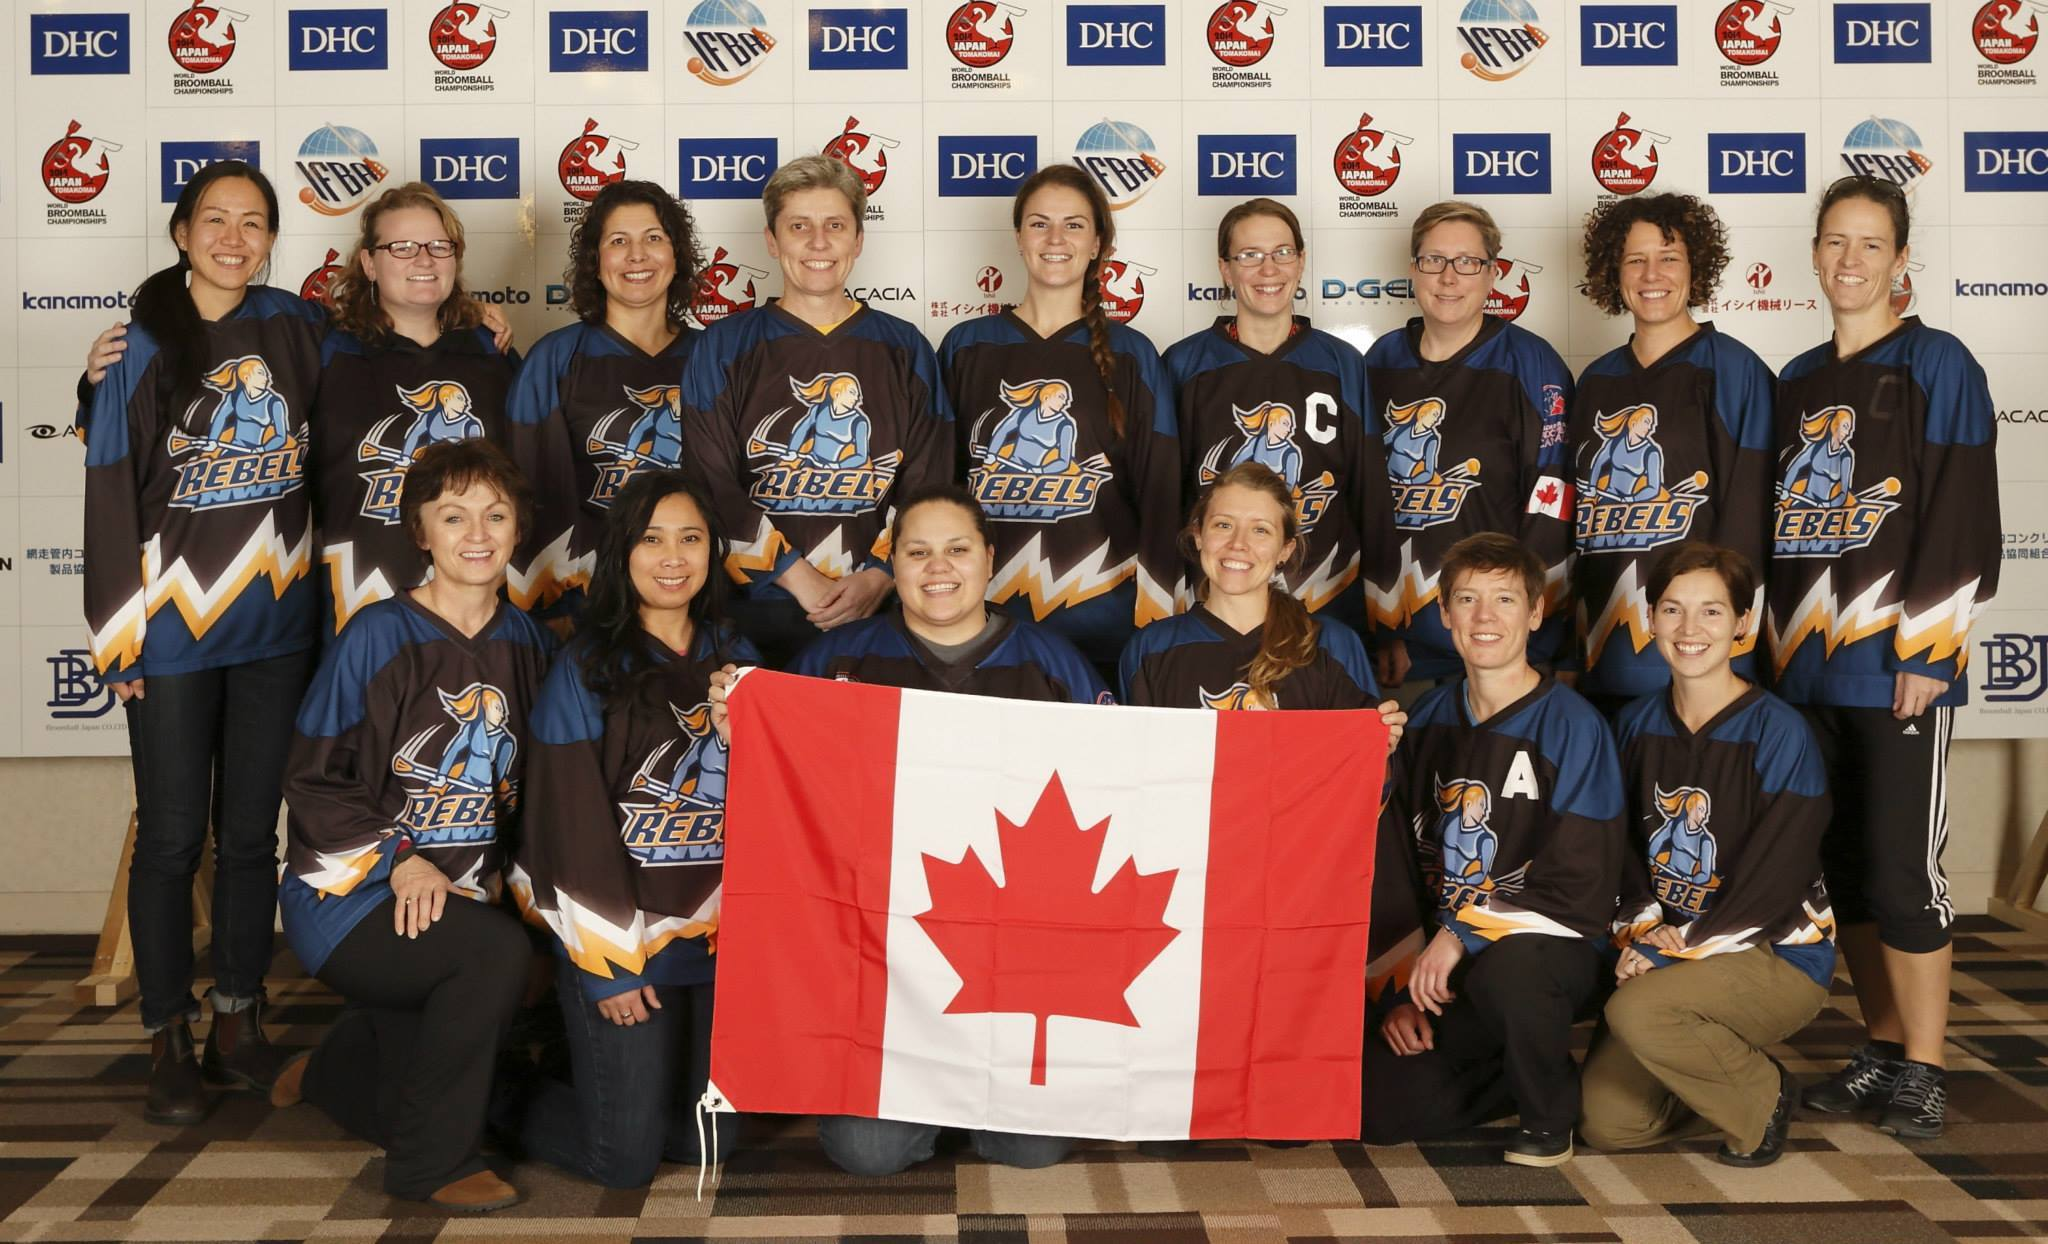 The 2014 edition of the NWT Rebels women's broomball team won the World Women's Broomball Championship that year and are the top seeds for the Greatest Of All Time bracket tournament. The champs are, front row from left, Denise Pyke, Grace Lau-a, Kyra Powder, Sarah Elsasser, Danielle Hawes and Terri-Lynn Locke-Setter; back row from left, Aki Iwase, Angela Love, Janelle James, Adriana Zibolenova, Orla Tobin, Jenny Crawford, Martha Goodman, Brenda Tittlemier and Tina Locke-Setter. photo courtesy of NWT Rebels